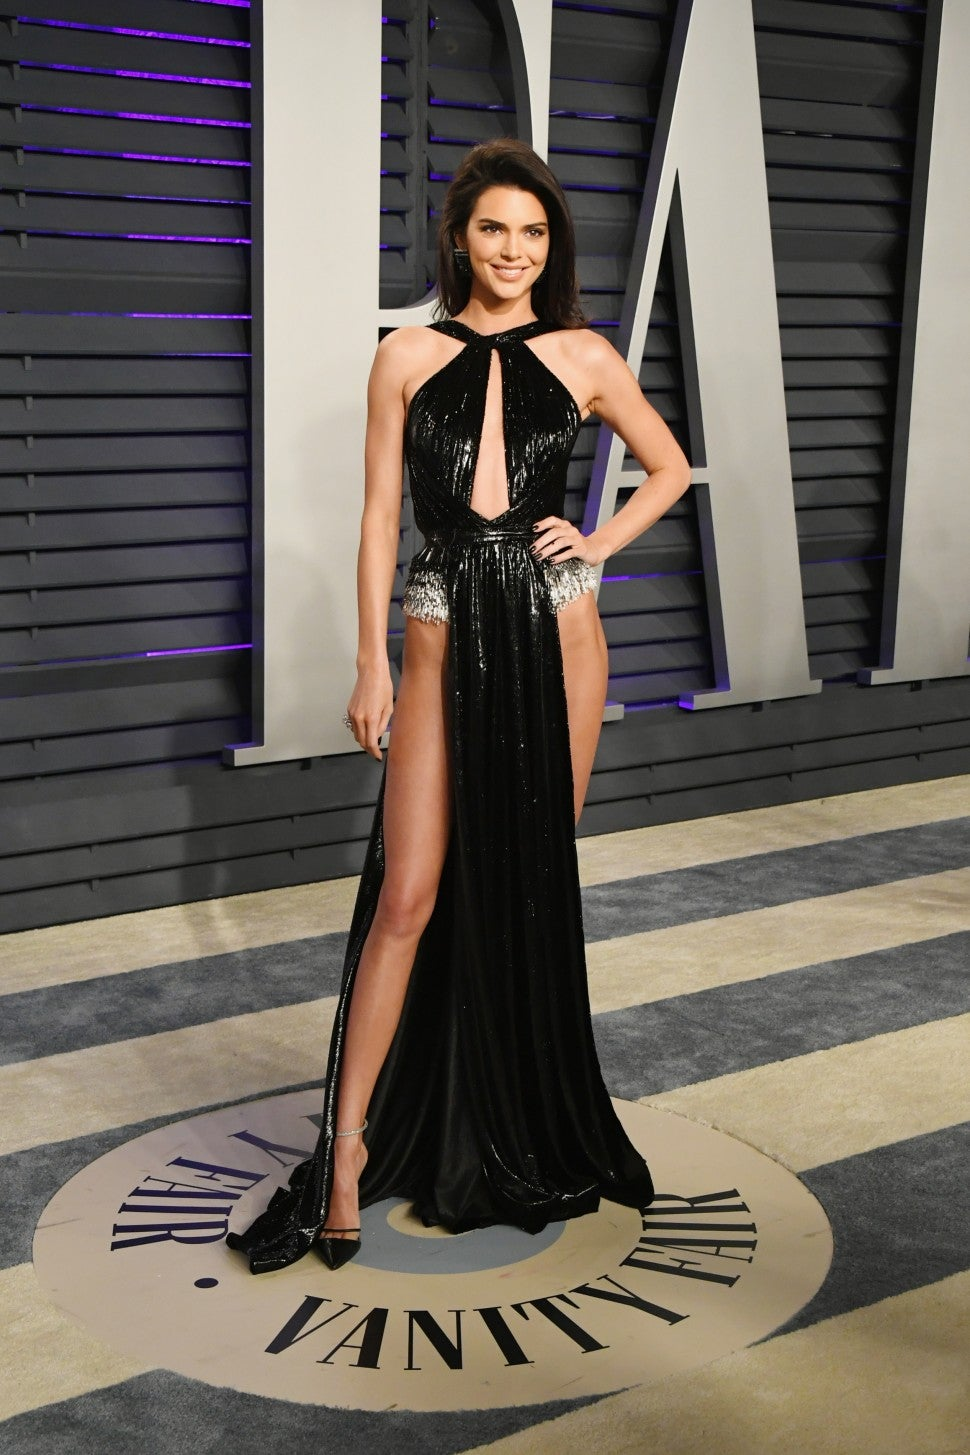 Kendall Jenner at Vanity Fair party